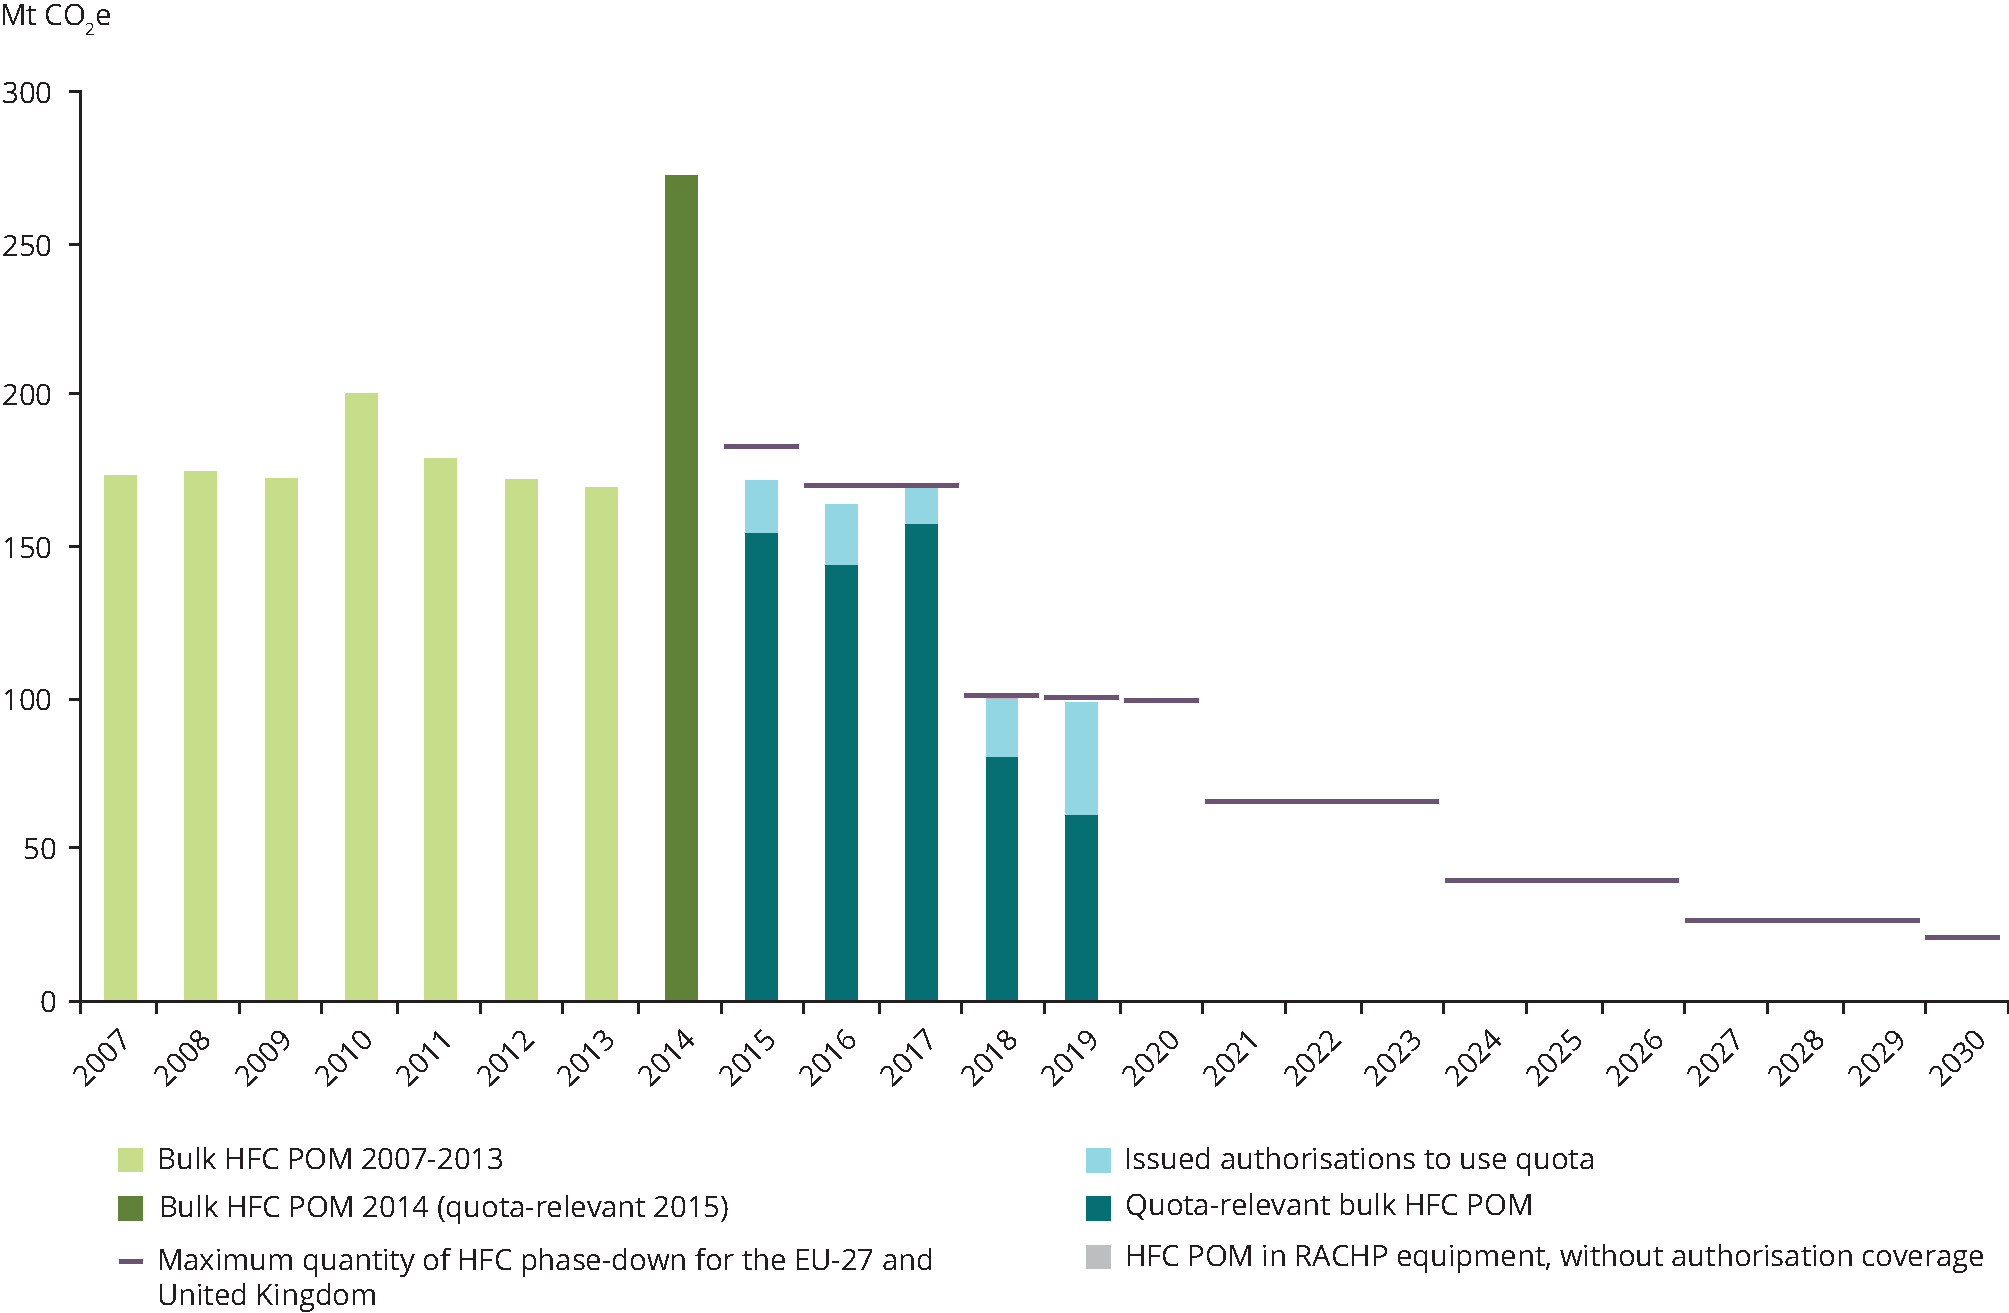 This graph shows the progress state of the gradual reduction of HFC as per EU regulation. The data reported for 2019 are preliminary and subjected to further validation by the European Commission. The values from 2007 to 2013 are based on the old regulation's communication obligations about fluorinated gases (EC) n. 842/2006 and therefore they are not fully comparable with the data since 2014 onwards (according to the new regulation's obligations about fluorinated gases EU 517/2014). The maximum quantities of gradual elimination of HFC in EU shown since 2019 onwards are indicated for EU-28. The maximum quantities of EU-27 for 2021 onwards will have to be recalculated for the period that follows the Brexit transition period. (Source: EEA)